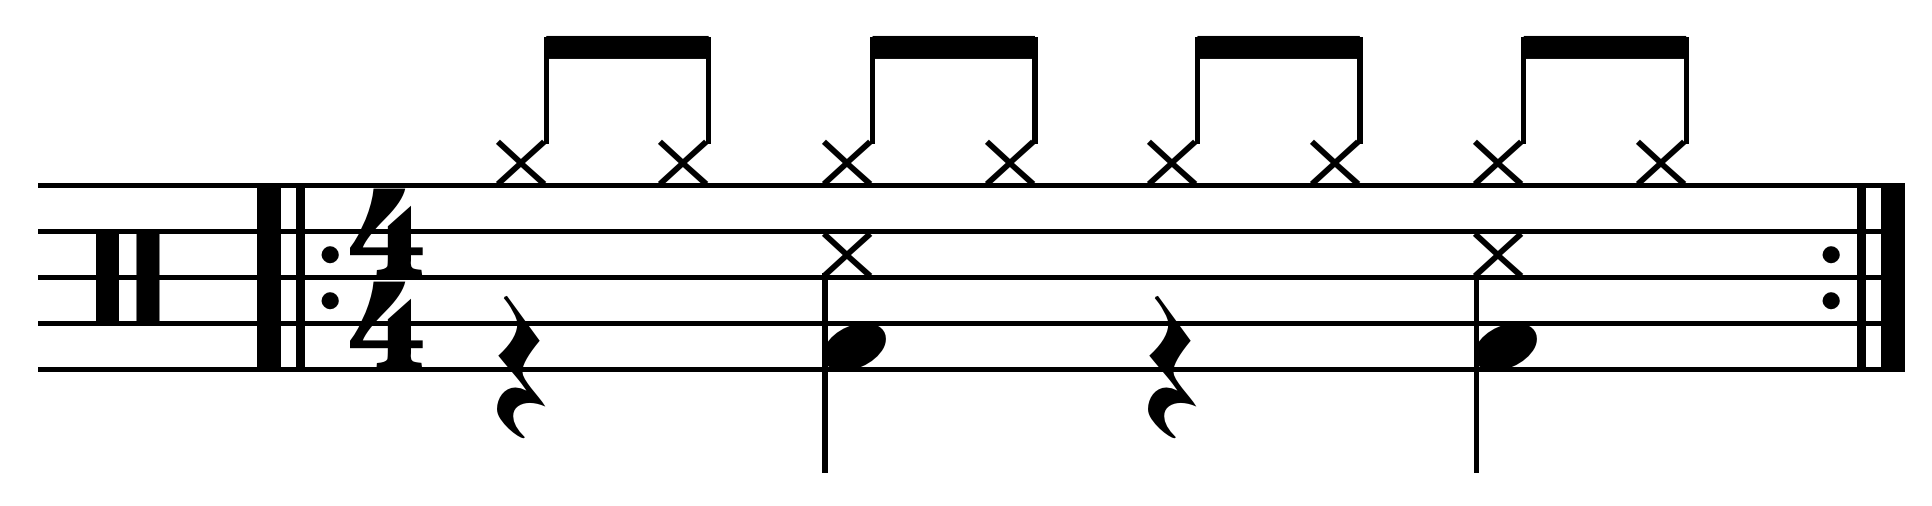 File:One Drop drum pattern png - Wikimedia Commons